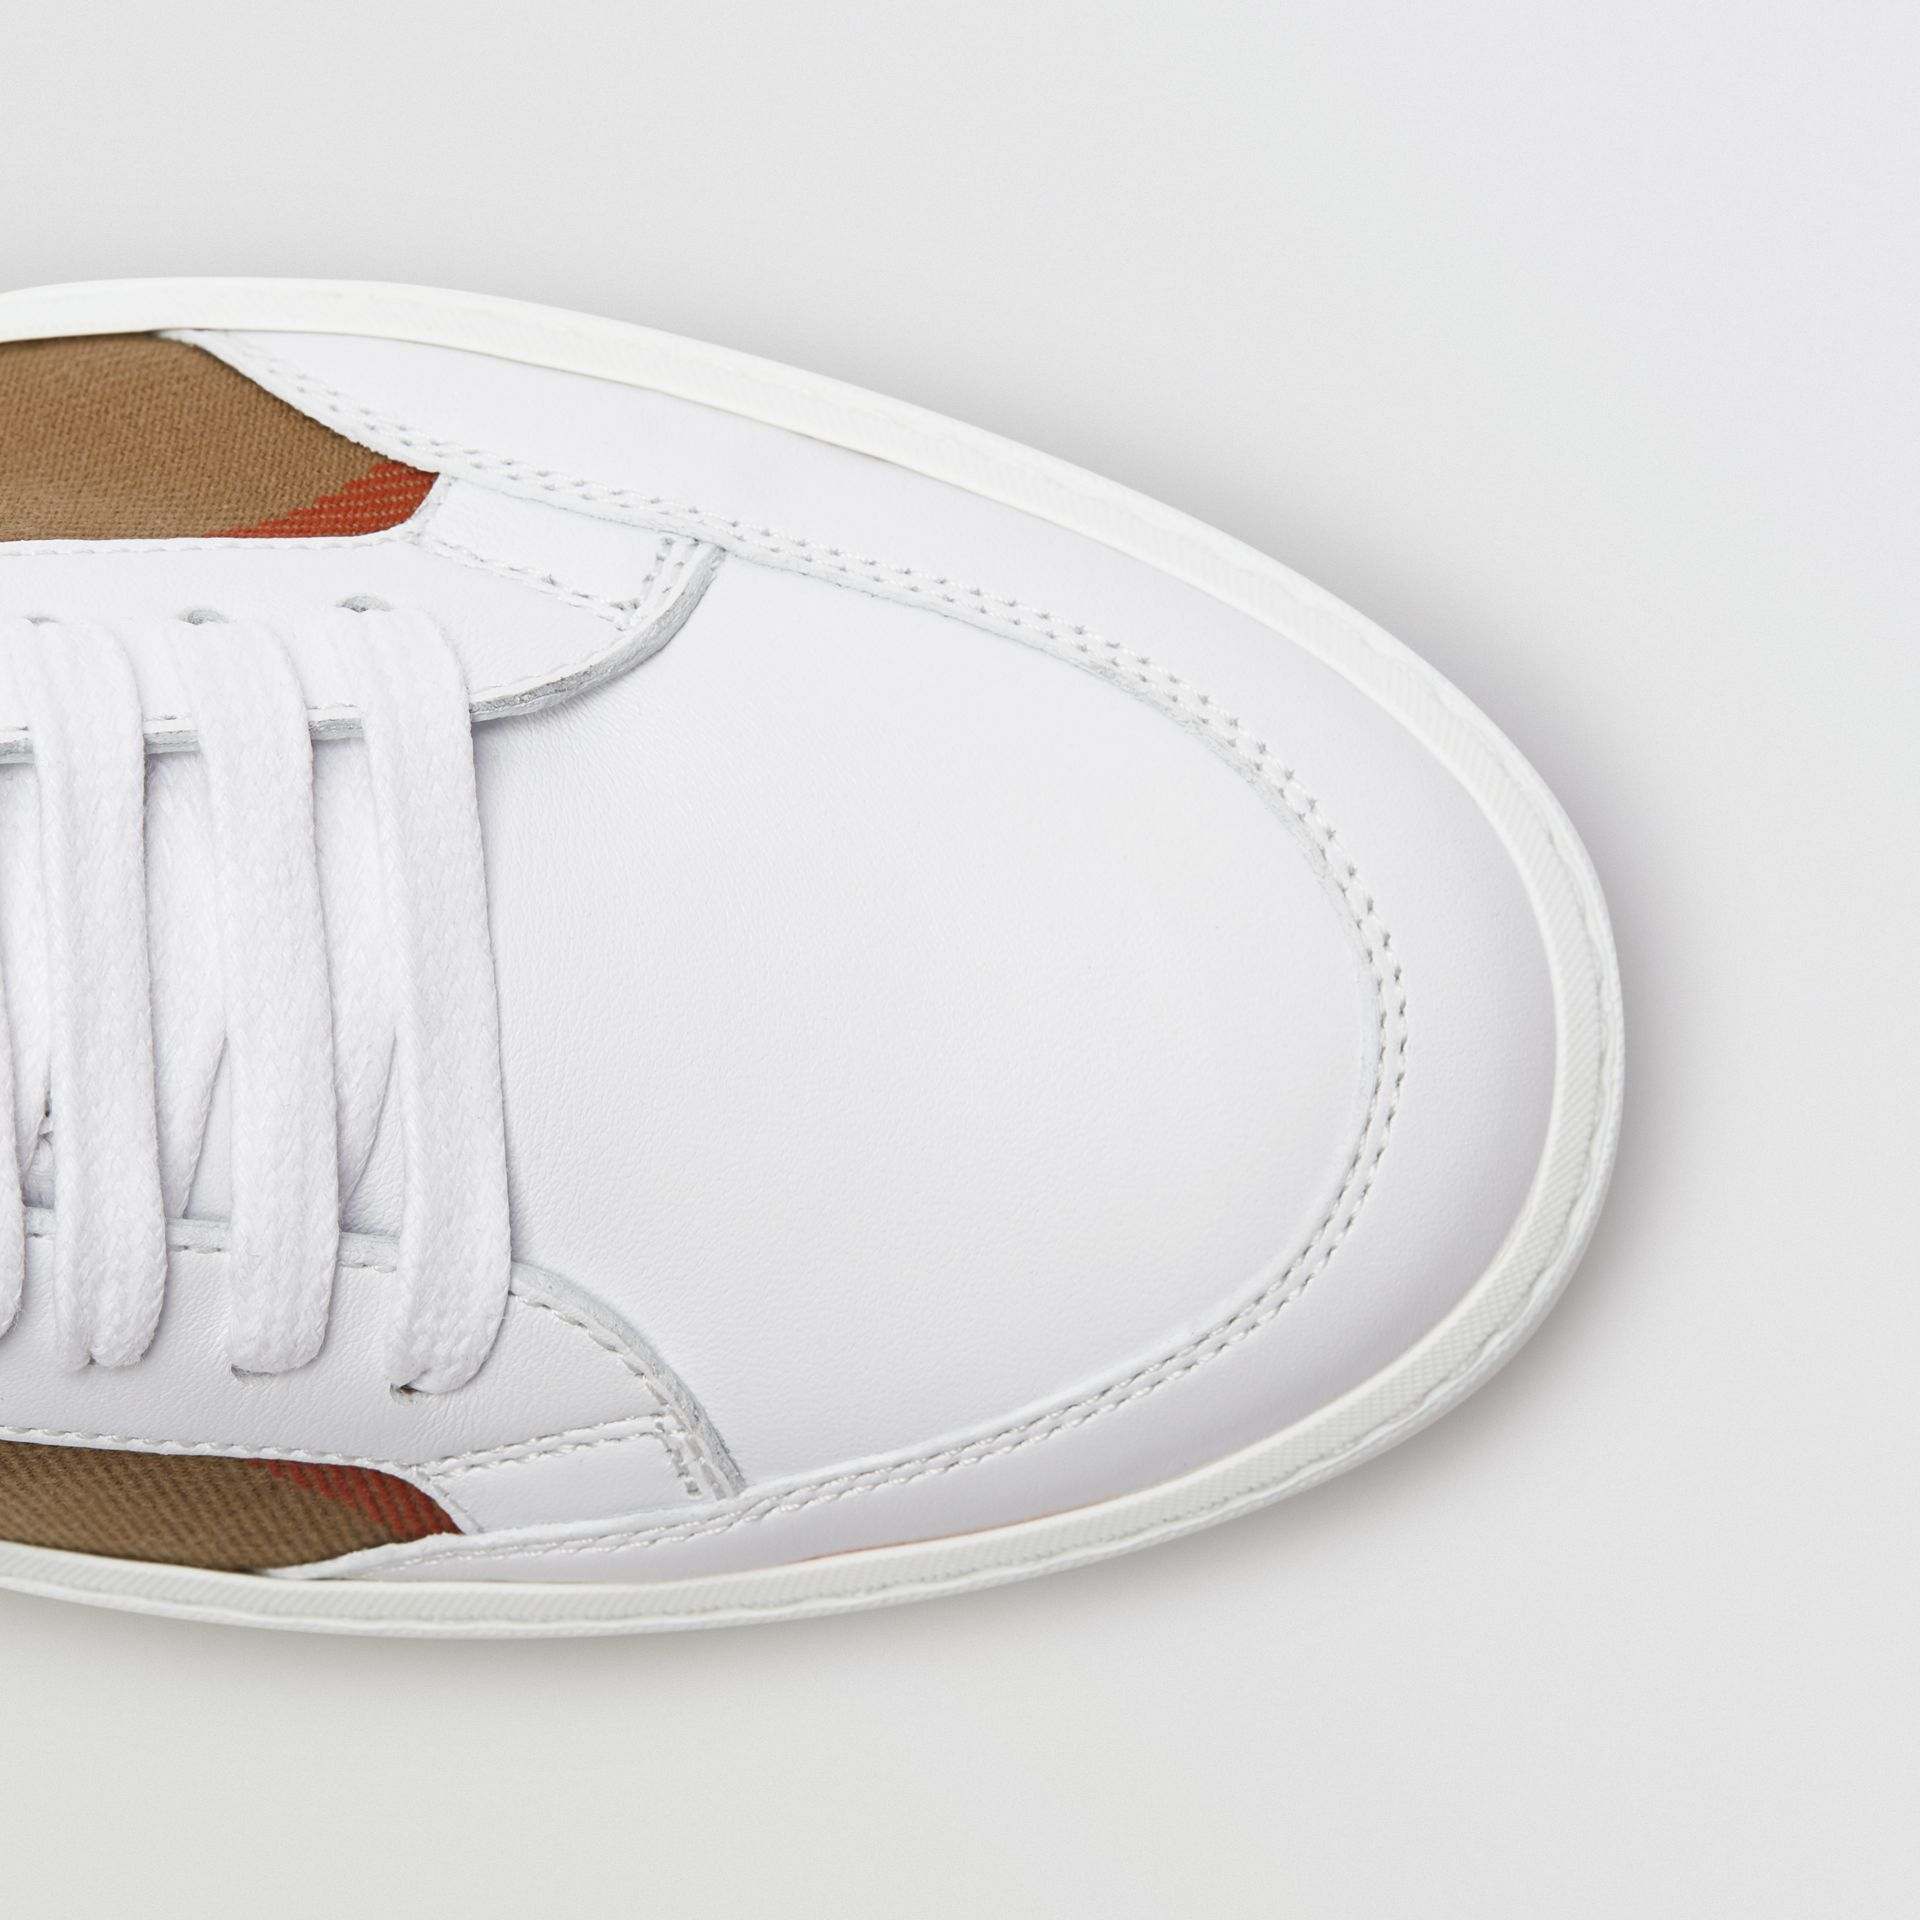 Check Detail Leather Sneakers in House Check/ Optic White - Women | Burberry United States - gallery image 1